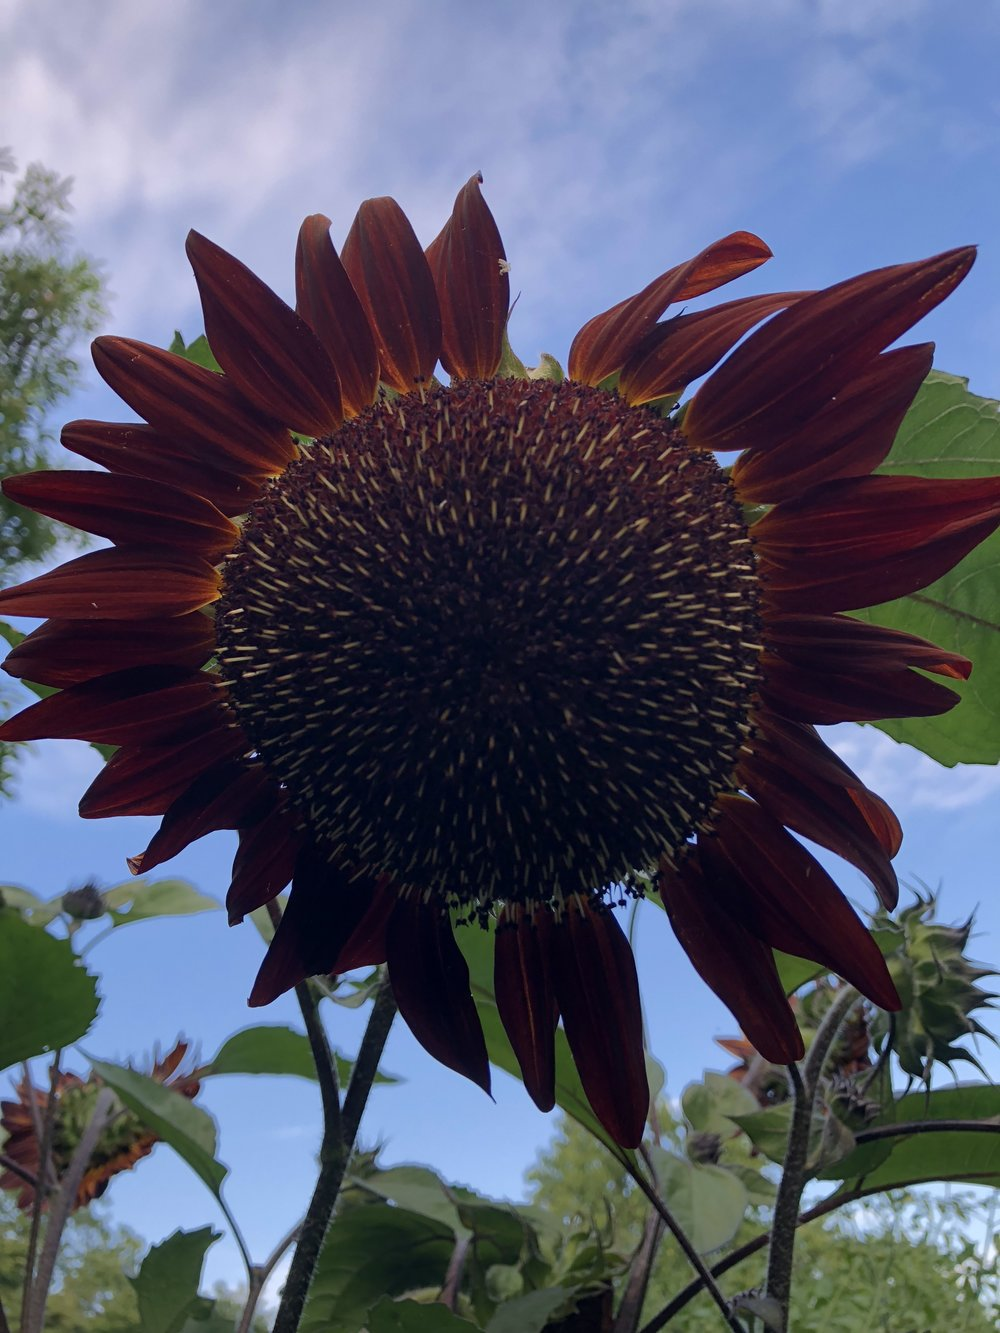 One of the dozen plus red sunflowers that all grow on the same plant! I'd never seen so many flower heads on the same stalk until this year!